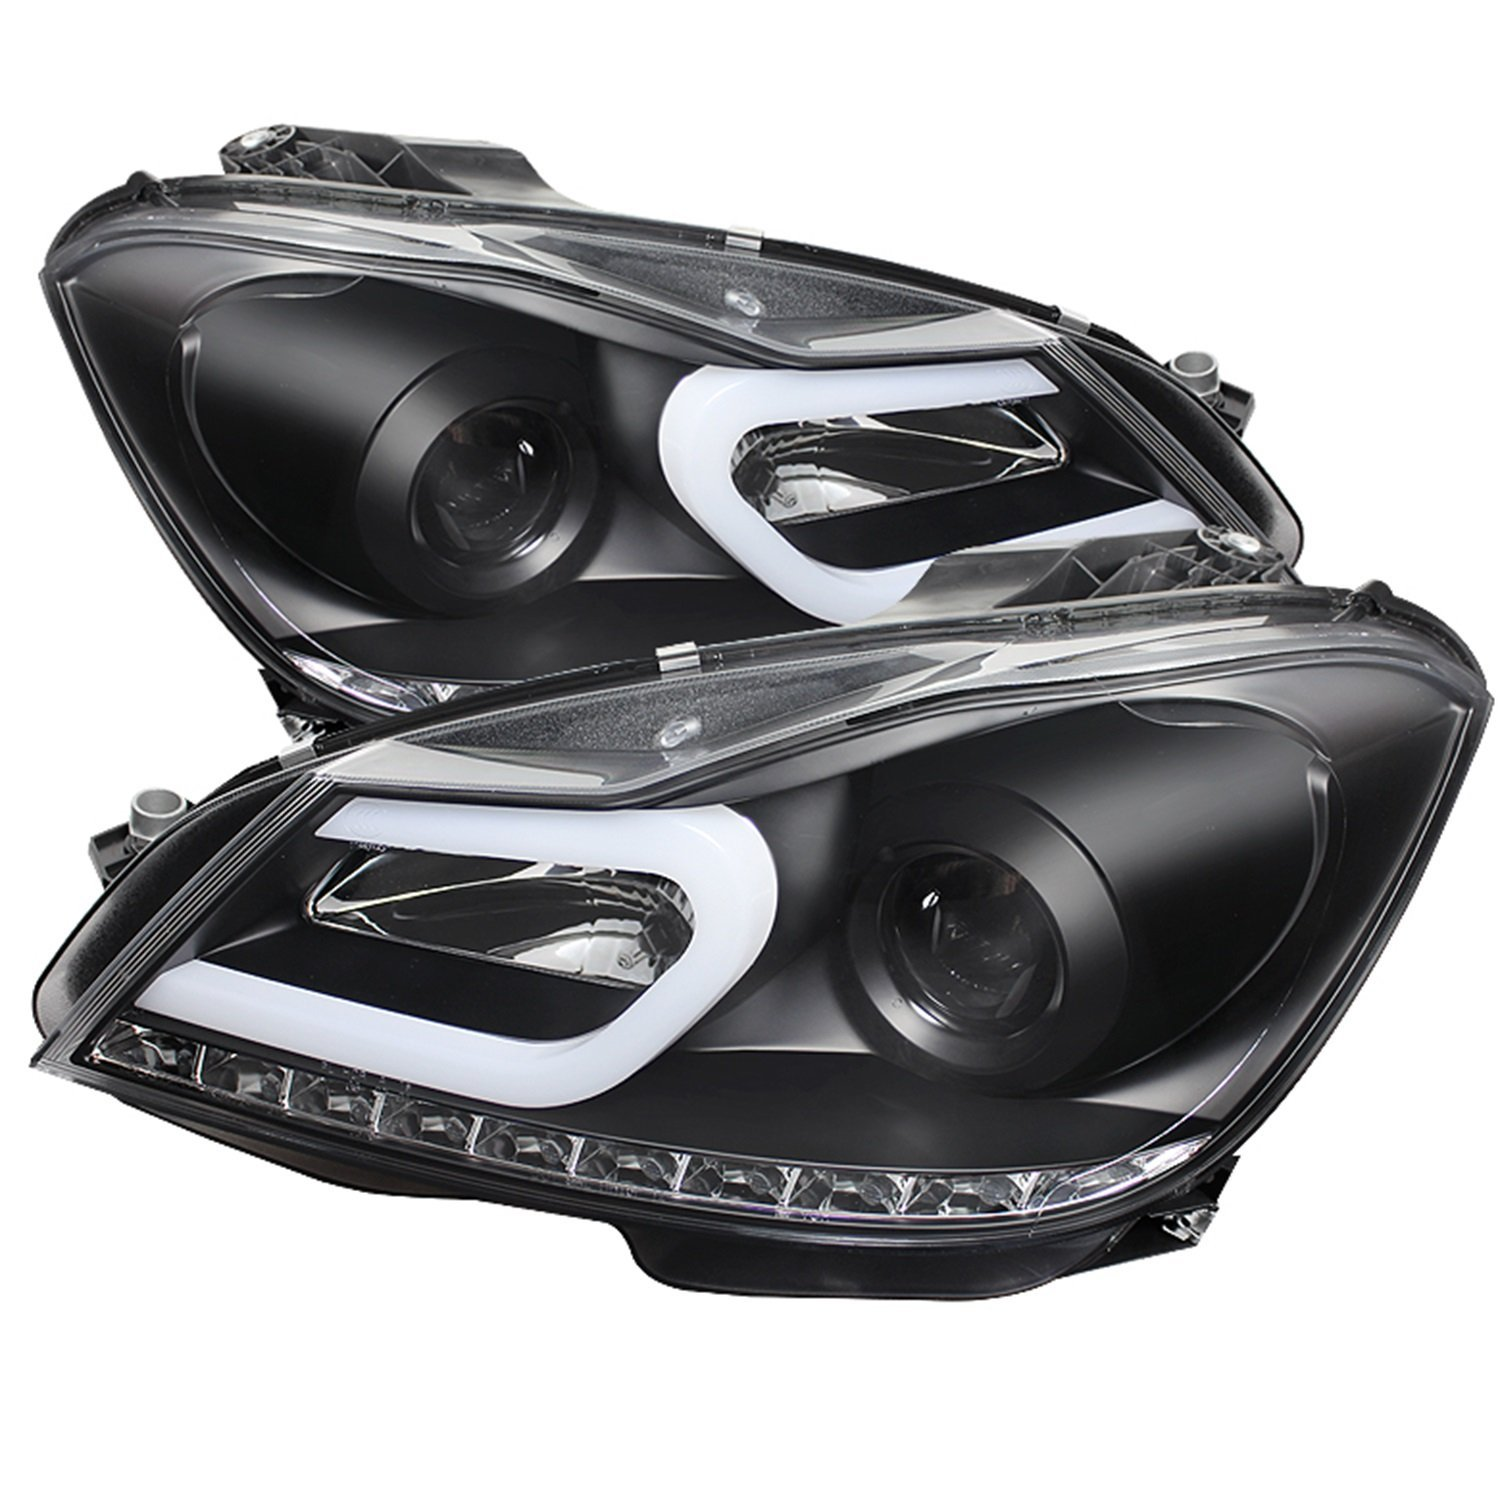 Cheap Drl Amg W204 find Drl Amg W204 deals on line at Alibaba